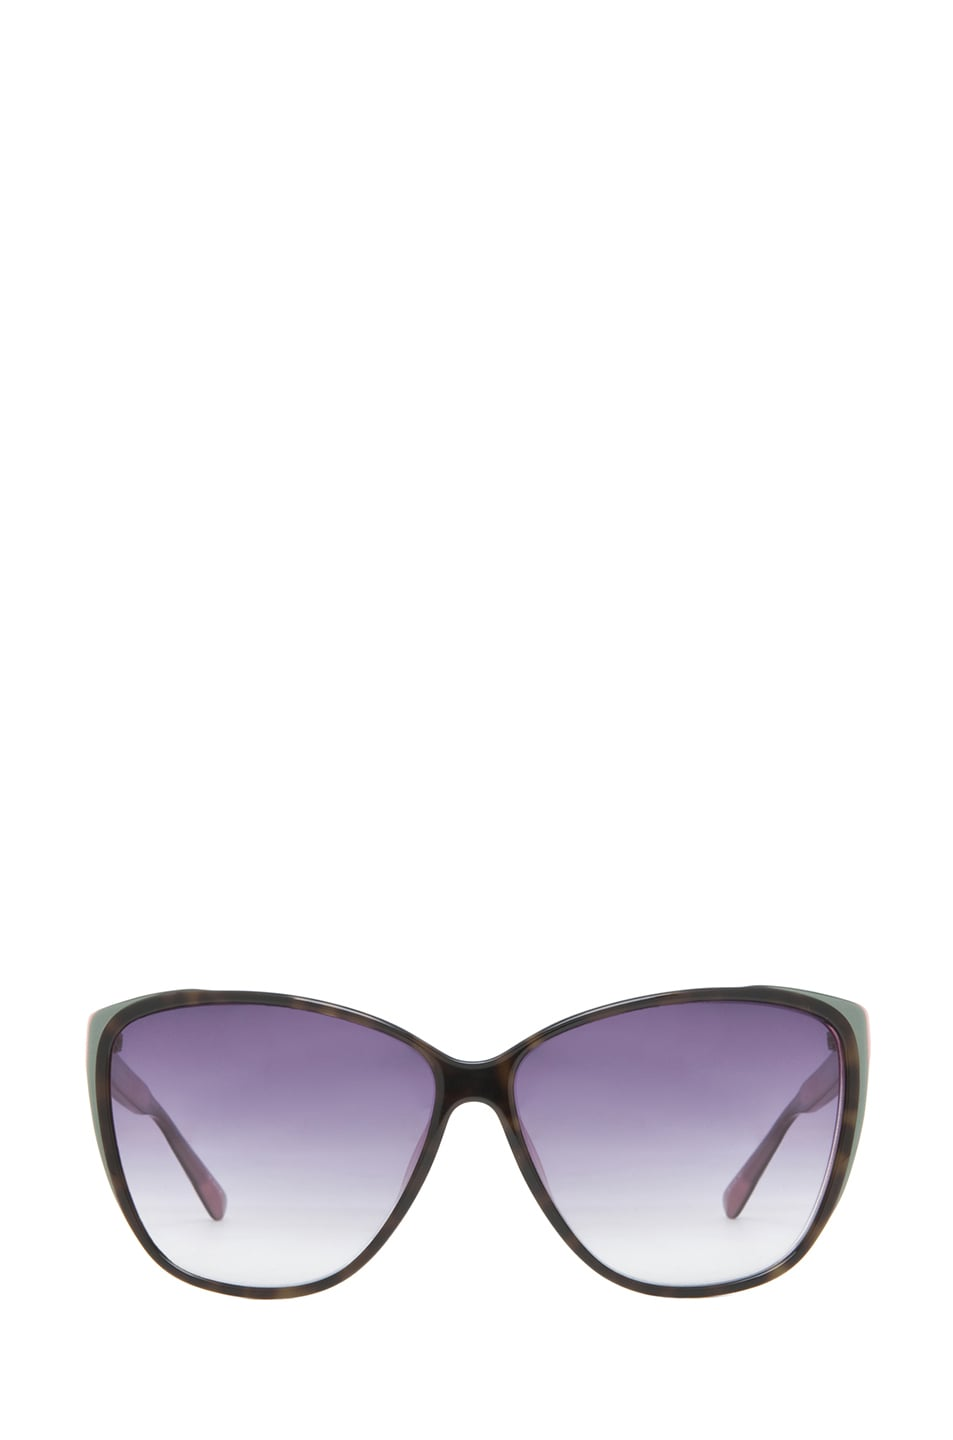 Image 1 of Matthew Williamson Caty Ee Sunglasses in Dusky Purple T Shell